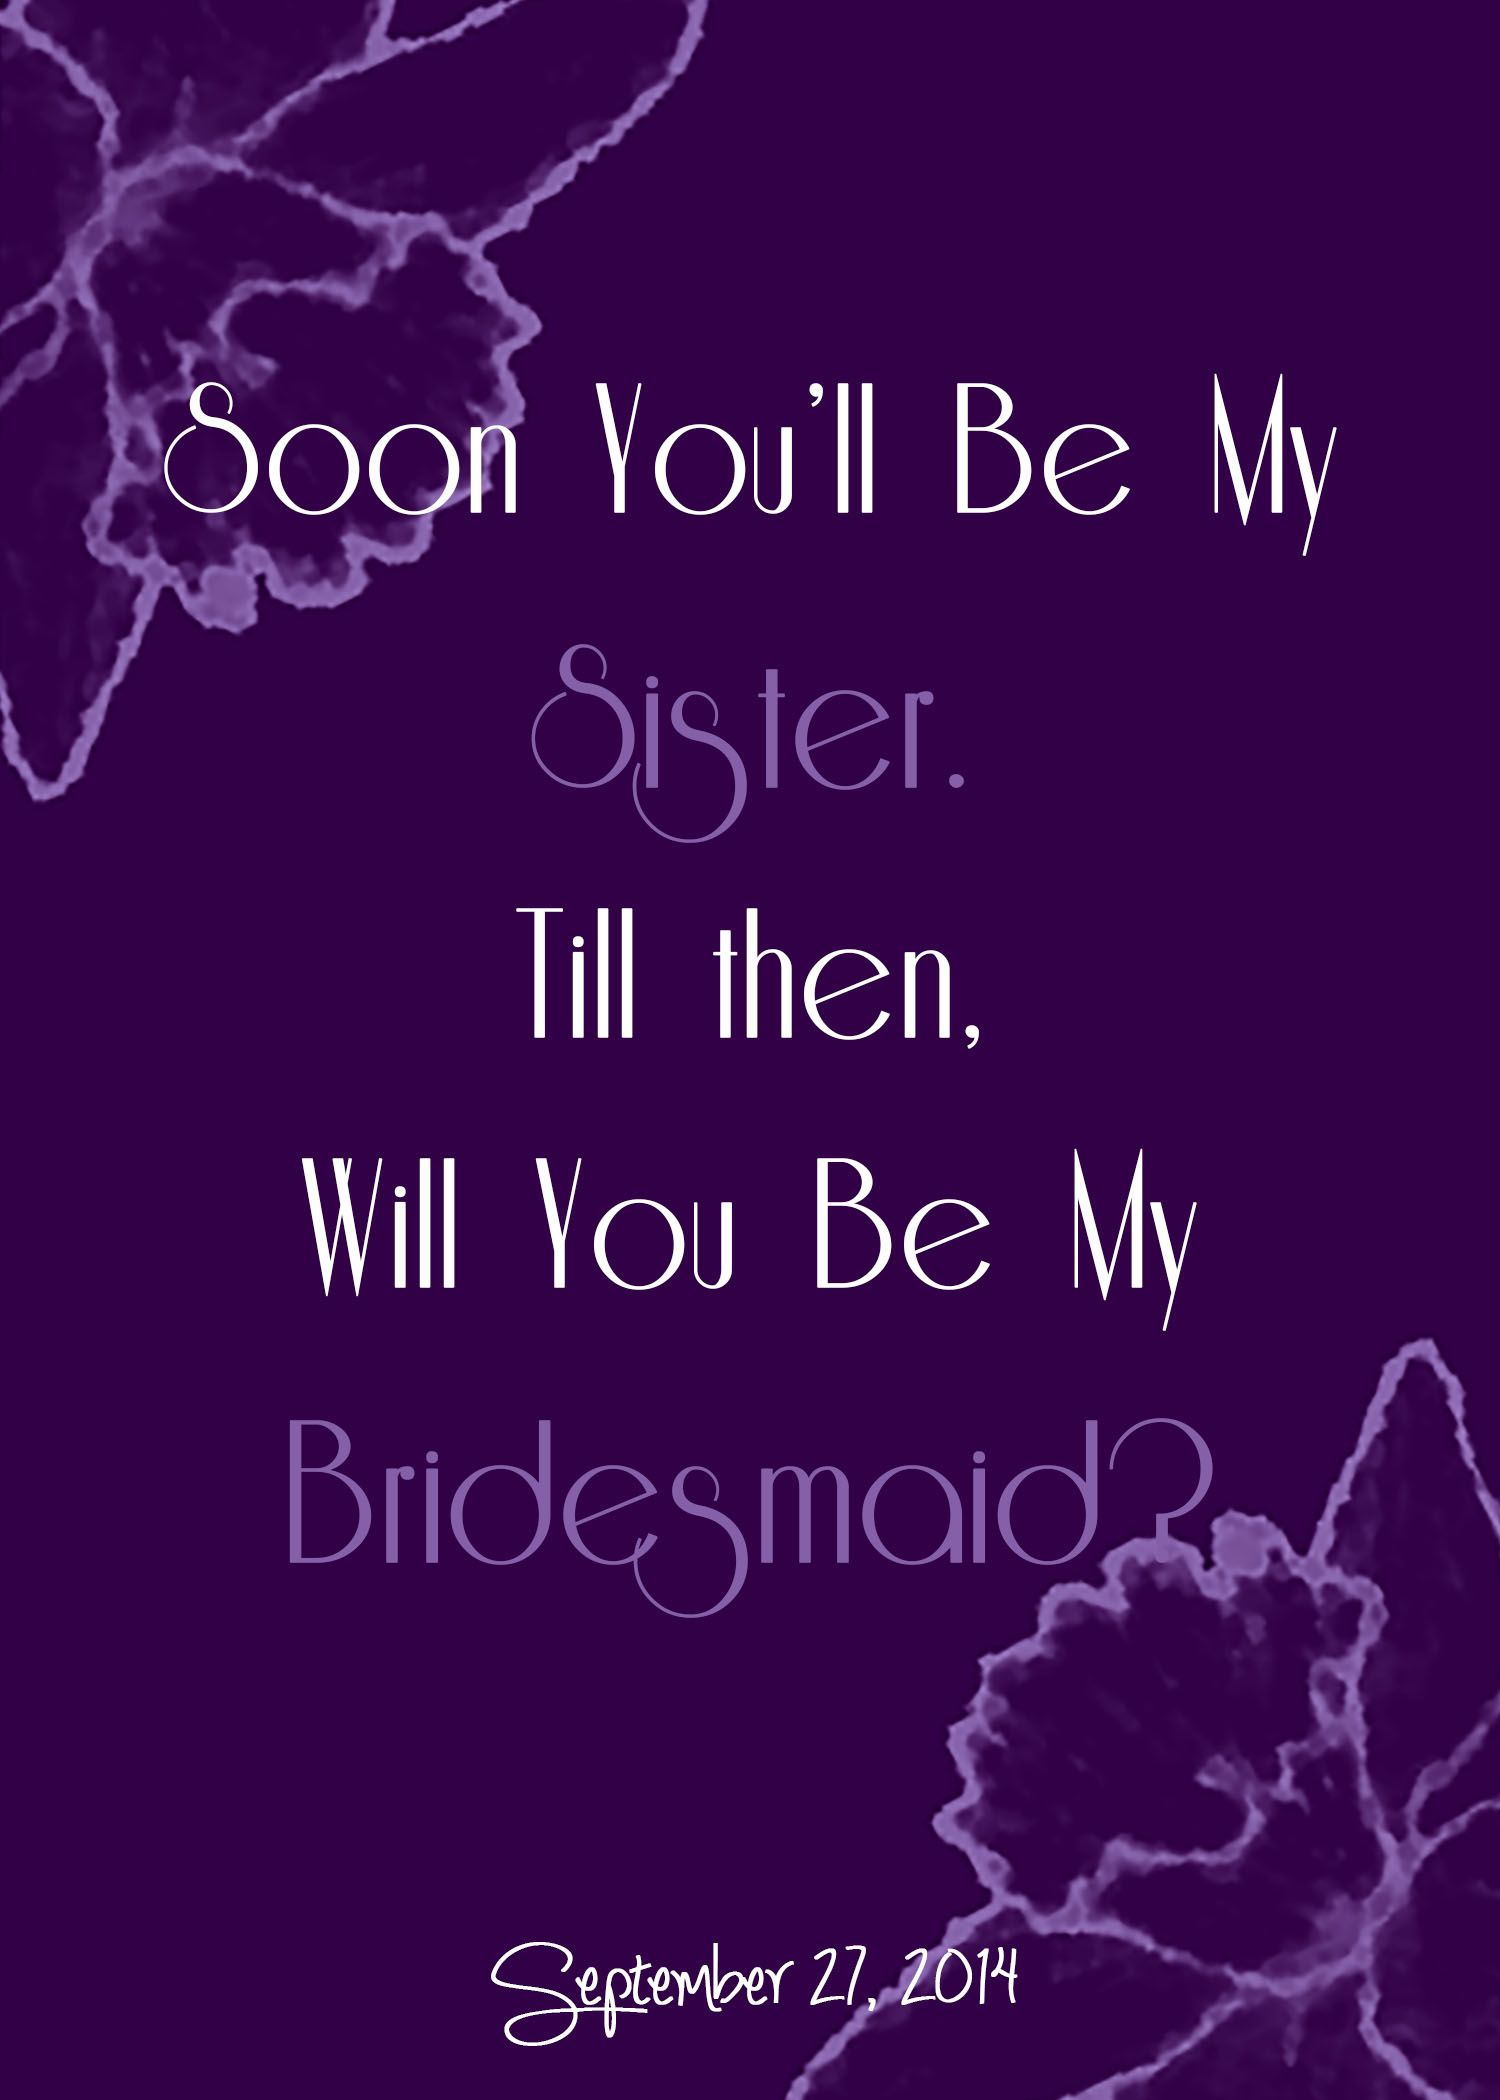 Will You Be My Bridesmaid Card For My Fiance S Sister Maybe In A Cuter Way The P Will You Be My Bridesmaid Gifts Will You Be My Bridesmaid Be My Bridesmaid